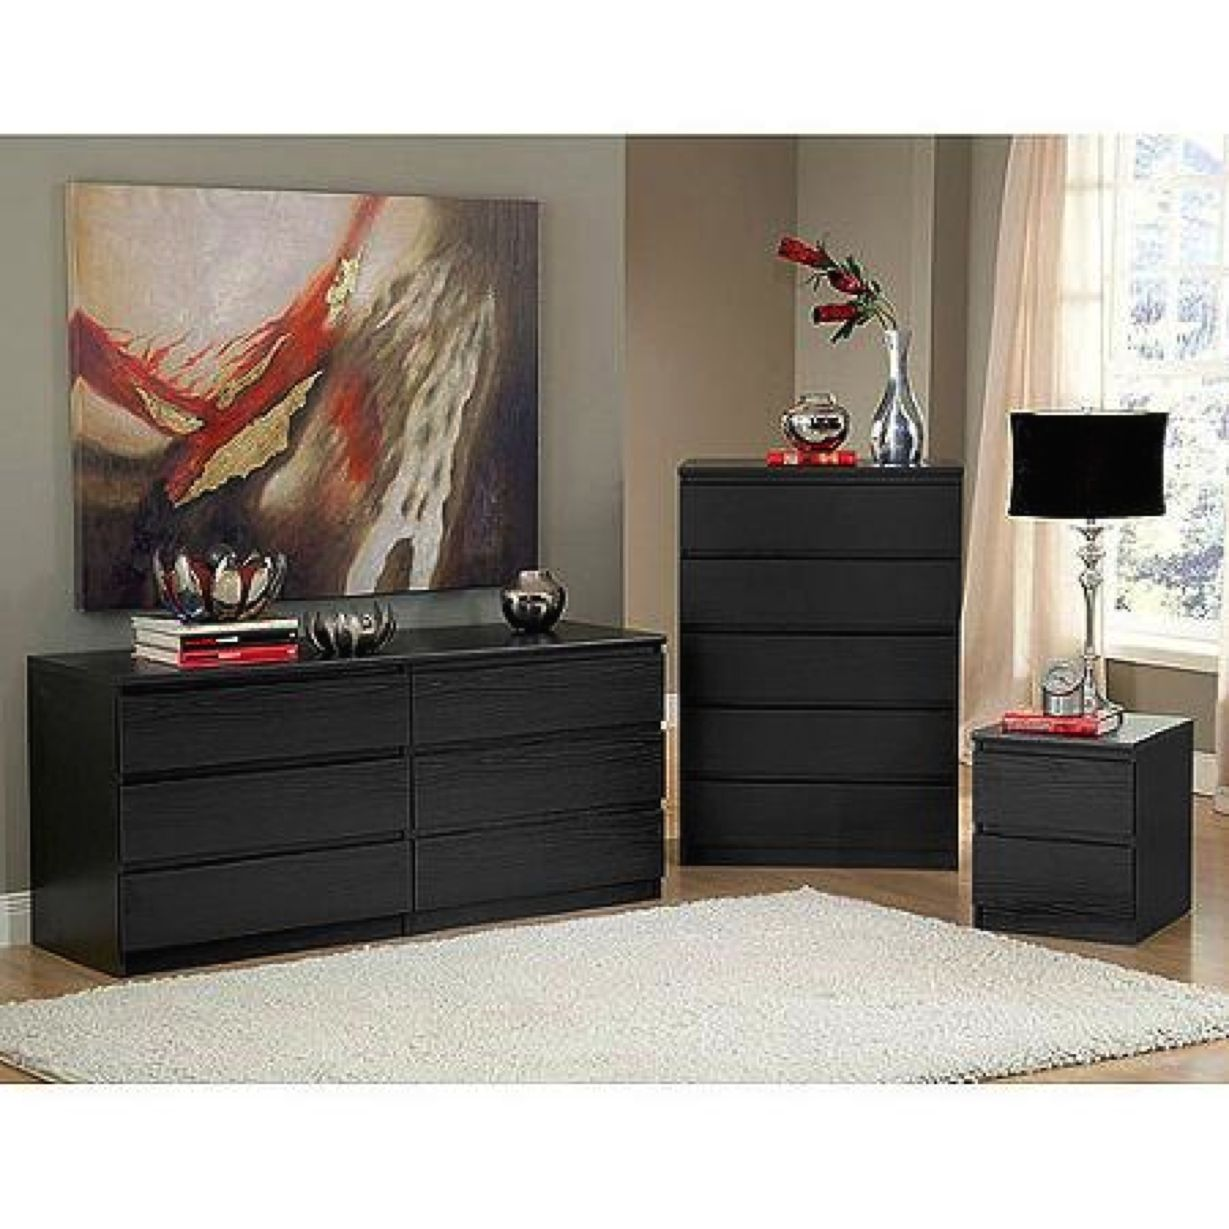 piece dresser nightstand chest of drawers black modern bedroom sets